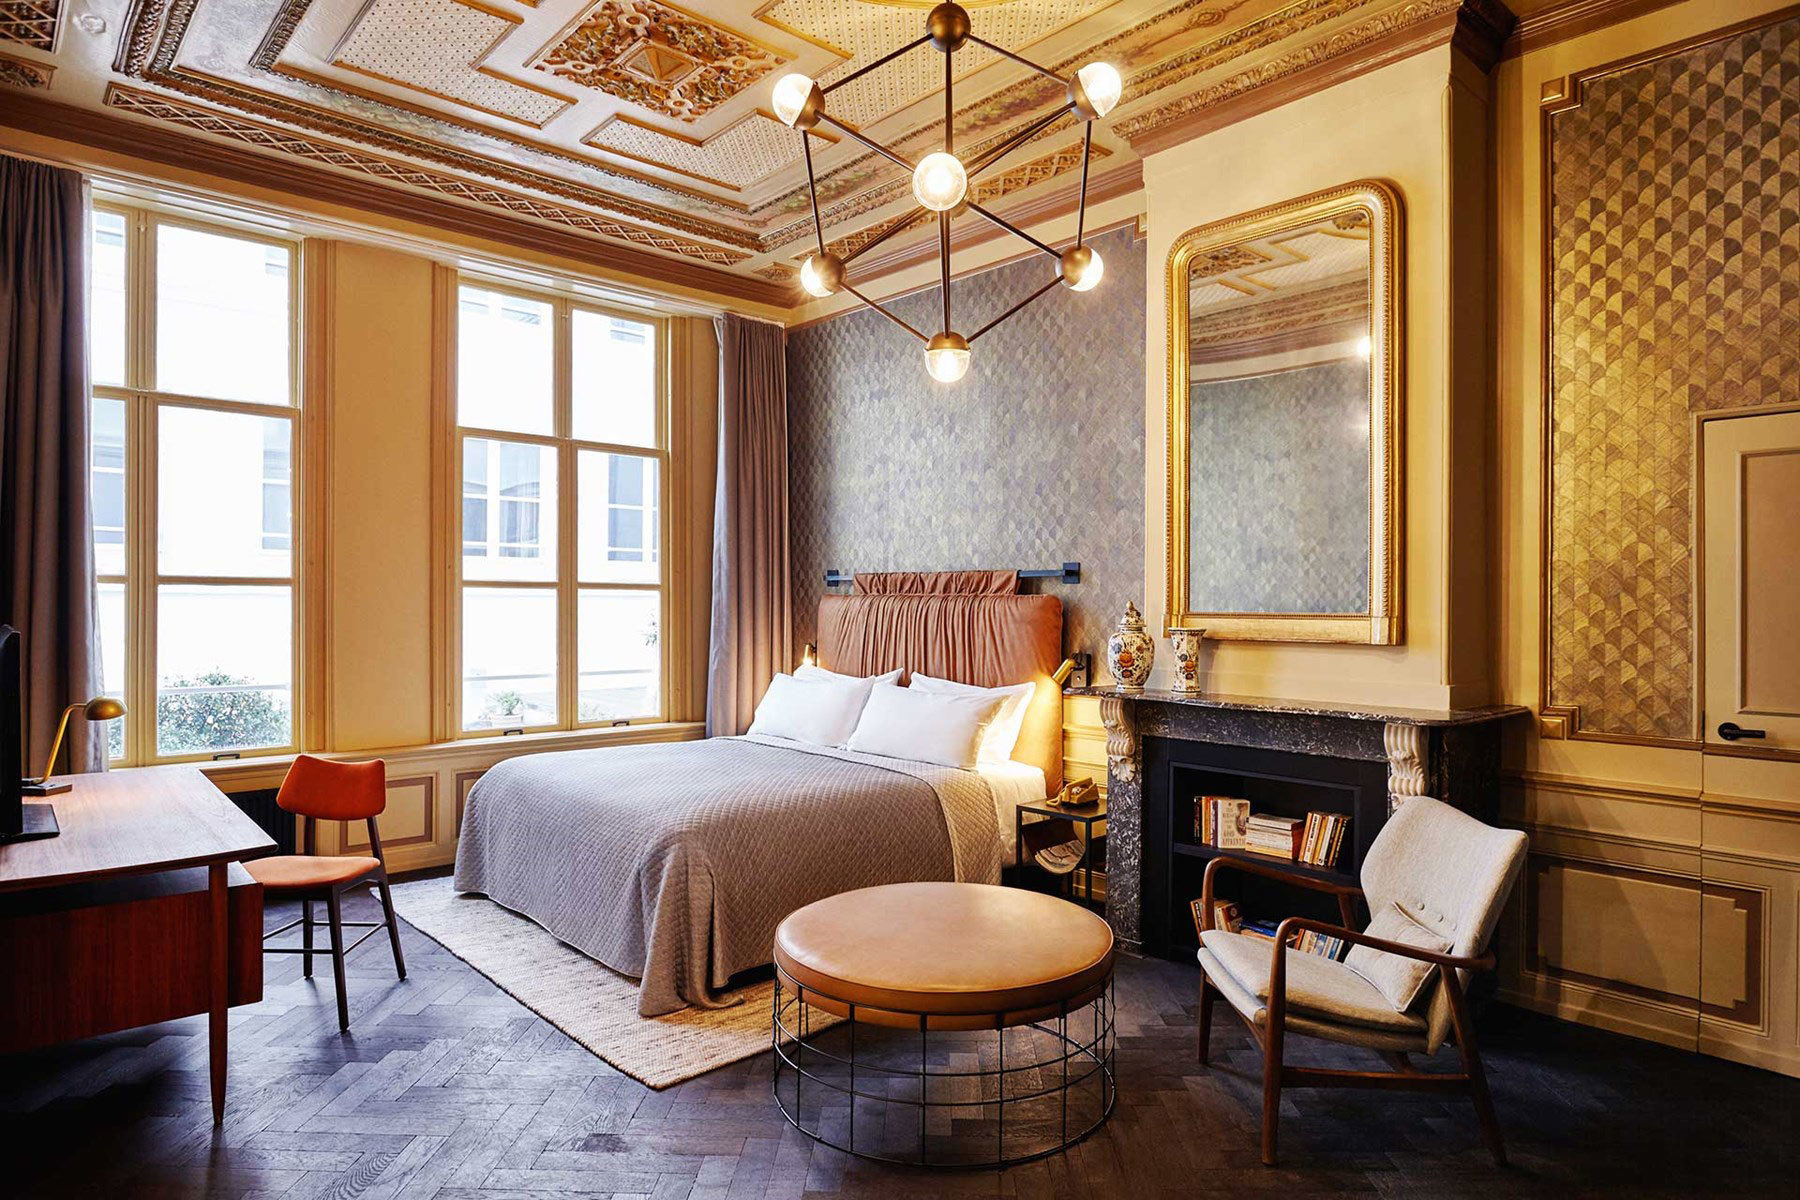 9 Hotel Interior Design Ideas for Your Home